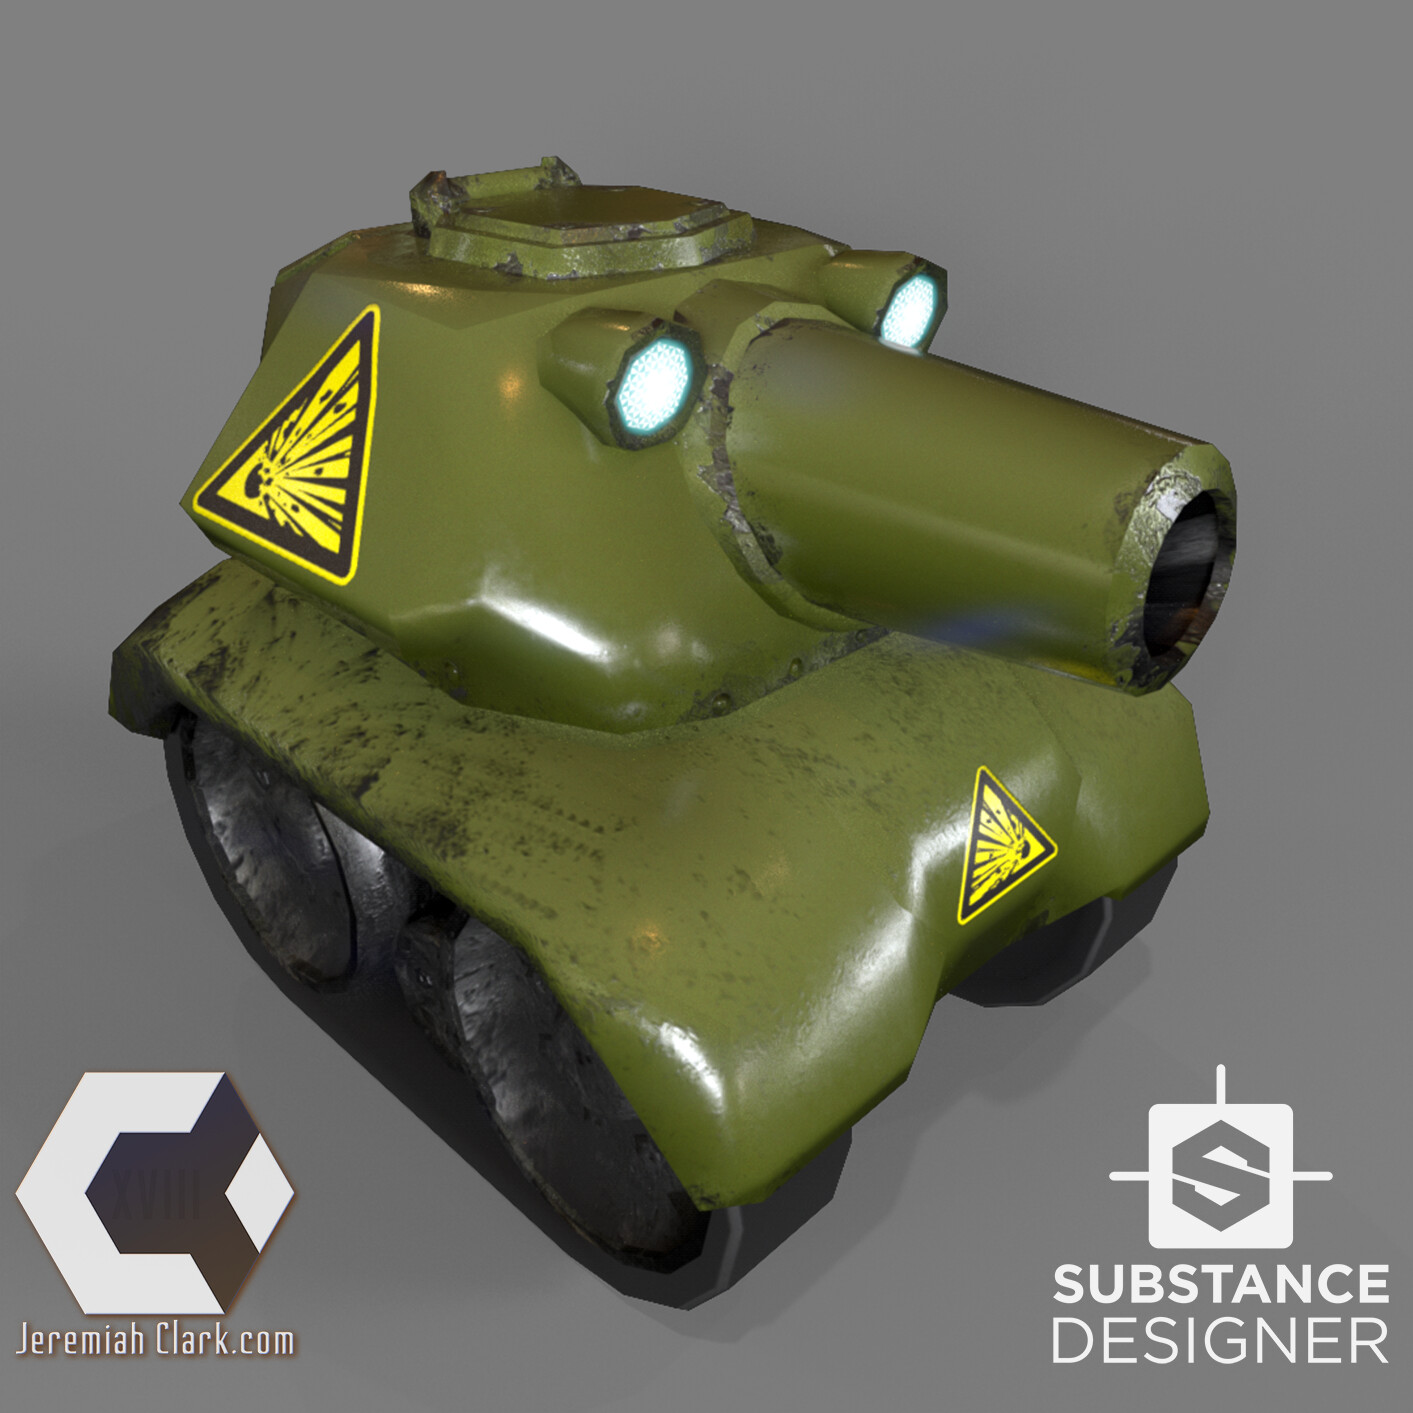 I picked a tank that was as far from the first as possible to test the texture. The same substance works with minimal adjustment.  Mesh optimized and UVed in Modo. Textured using Substance Designer. Rendered using IRay in Substance Desi